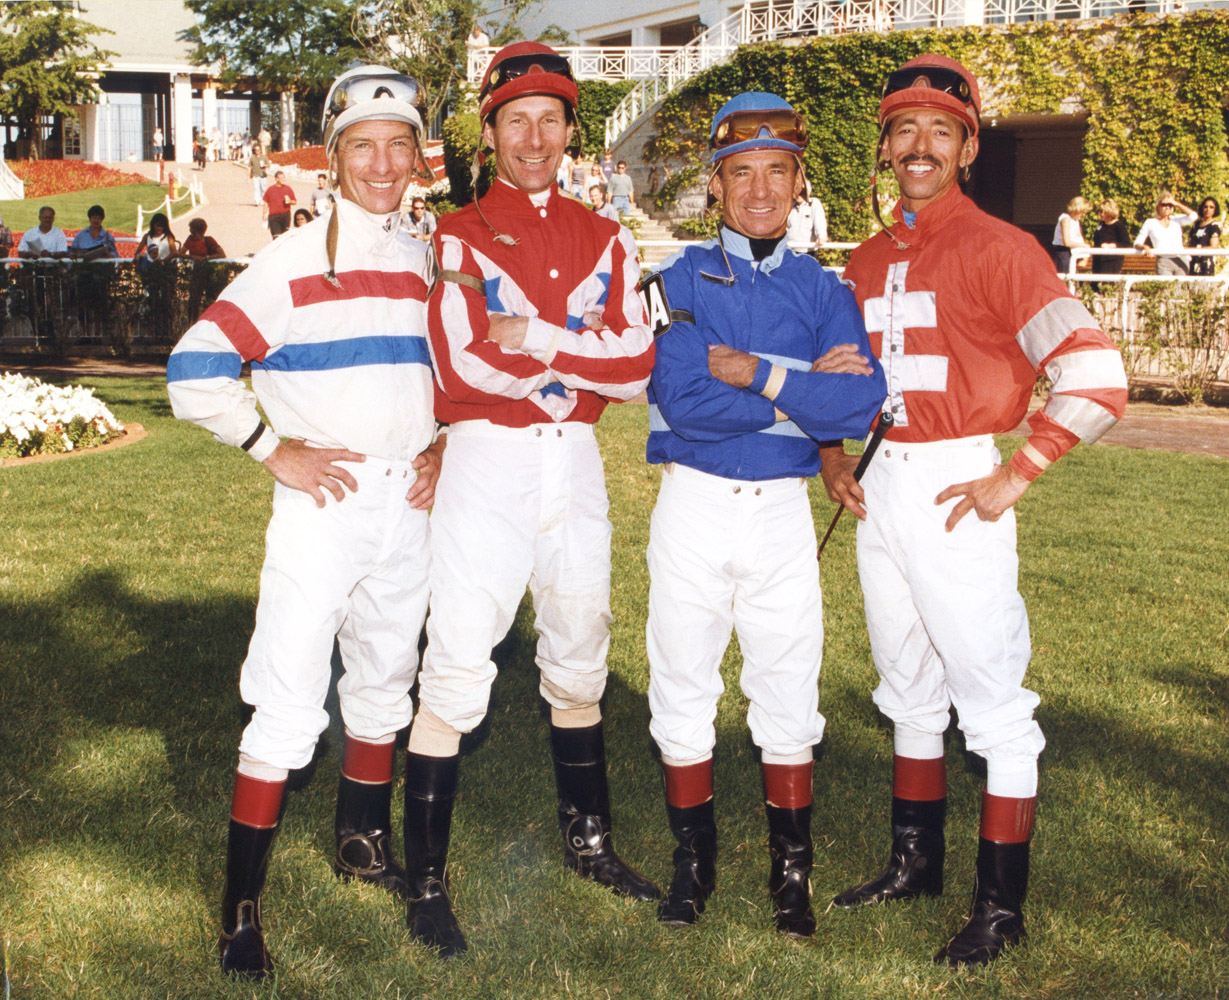 Arlington's 4,000 wins: jockeys Tim Doocy, Ray Sibille, Earlie Fires, and Mark Guidry (Benoit Photo/Museum Collection)